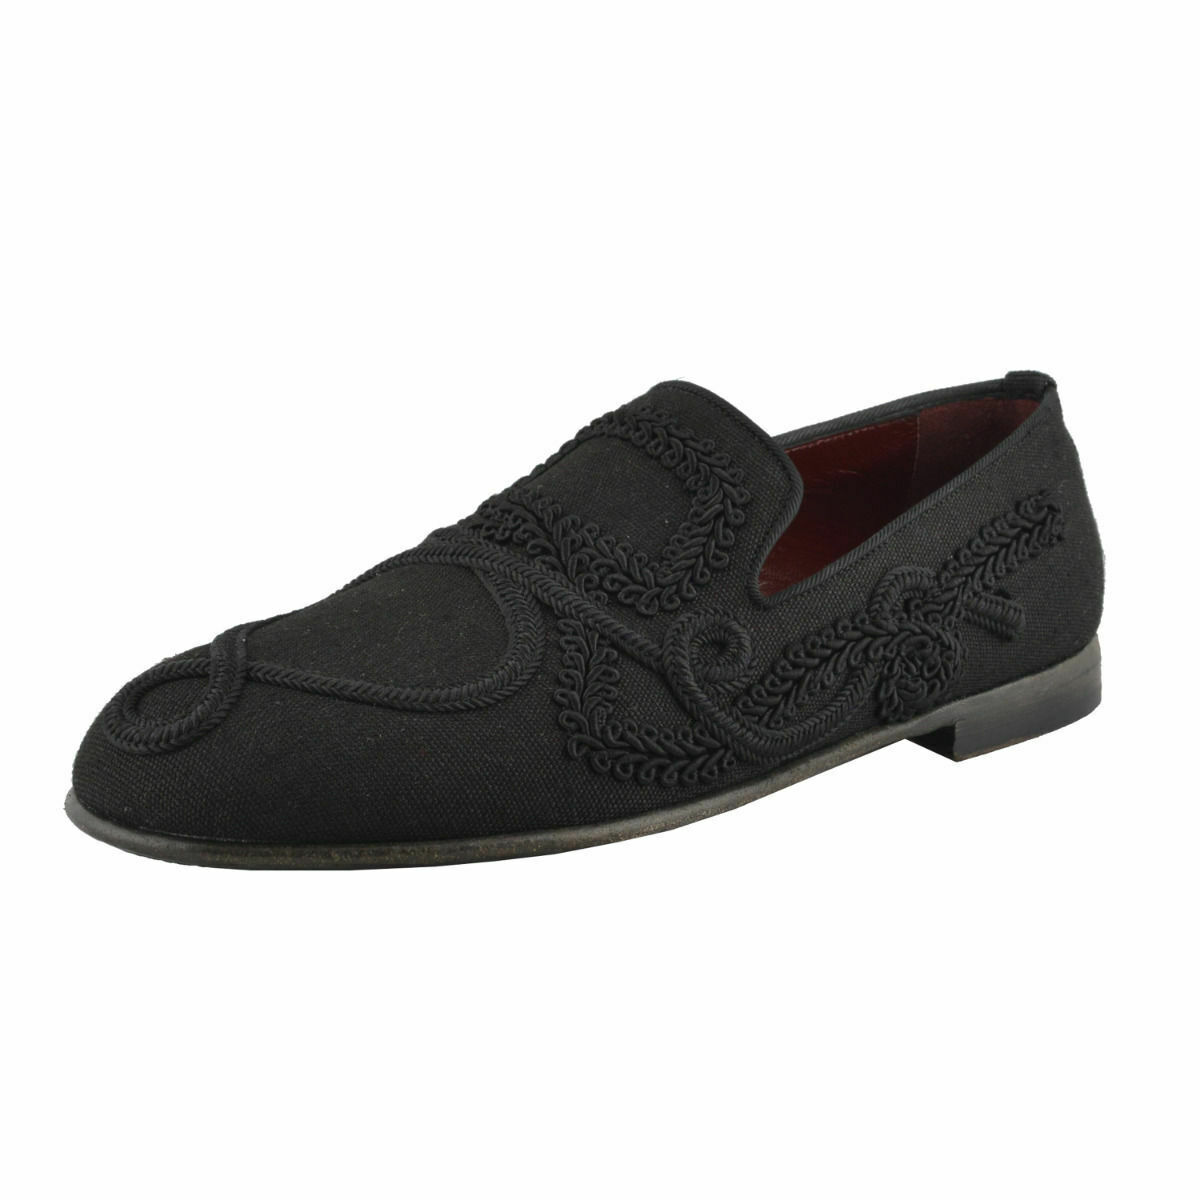 Dolce & Gabbana Linen Leather Loafers Slip On Shoes Sz 6.5 8.5